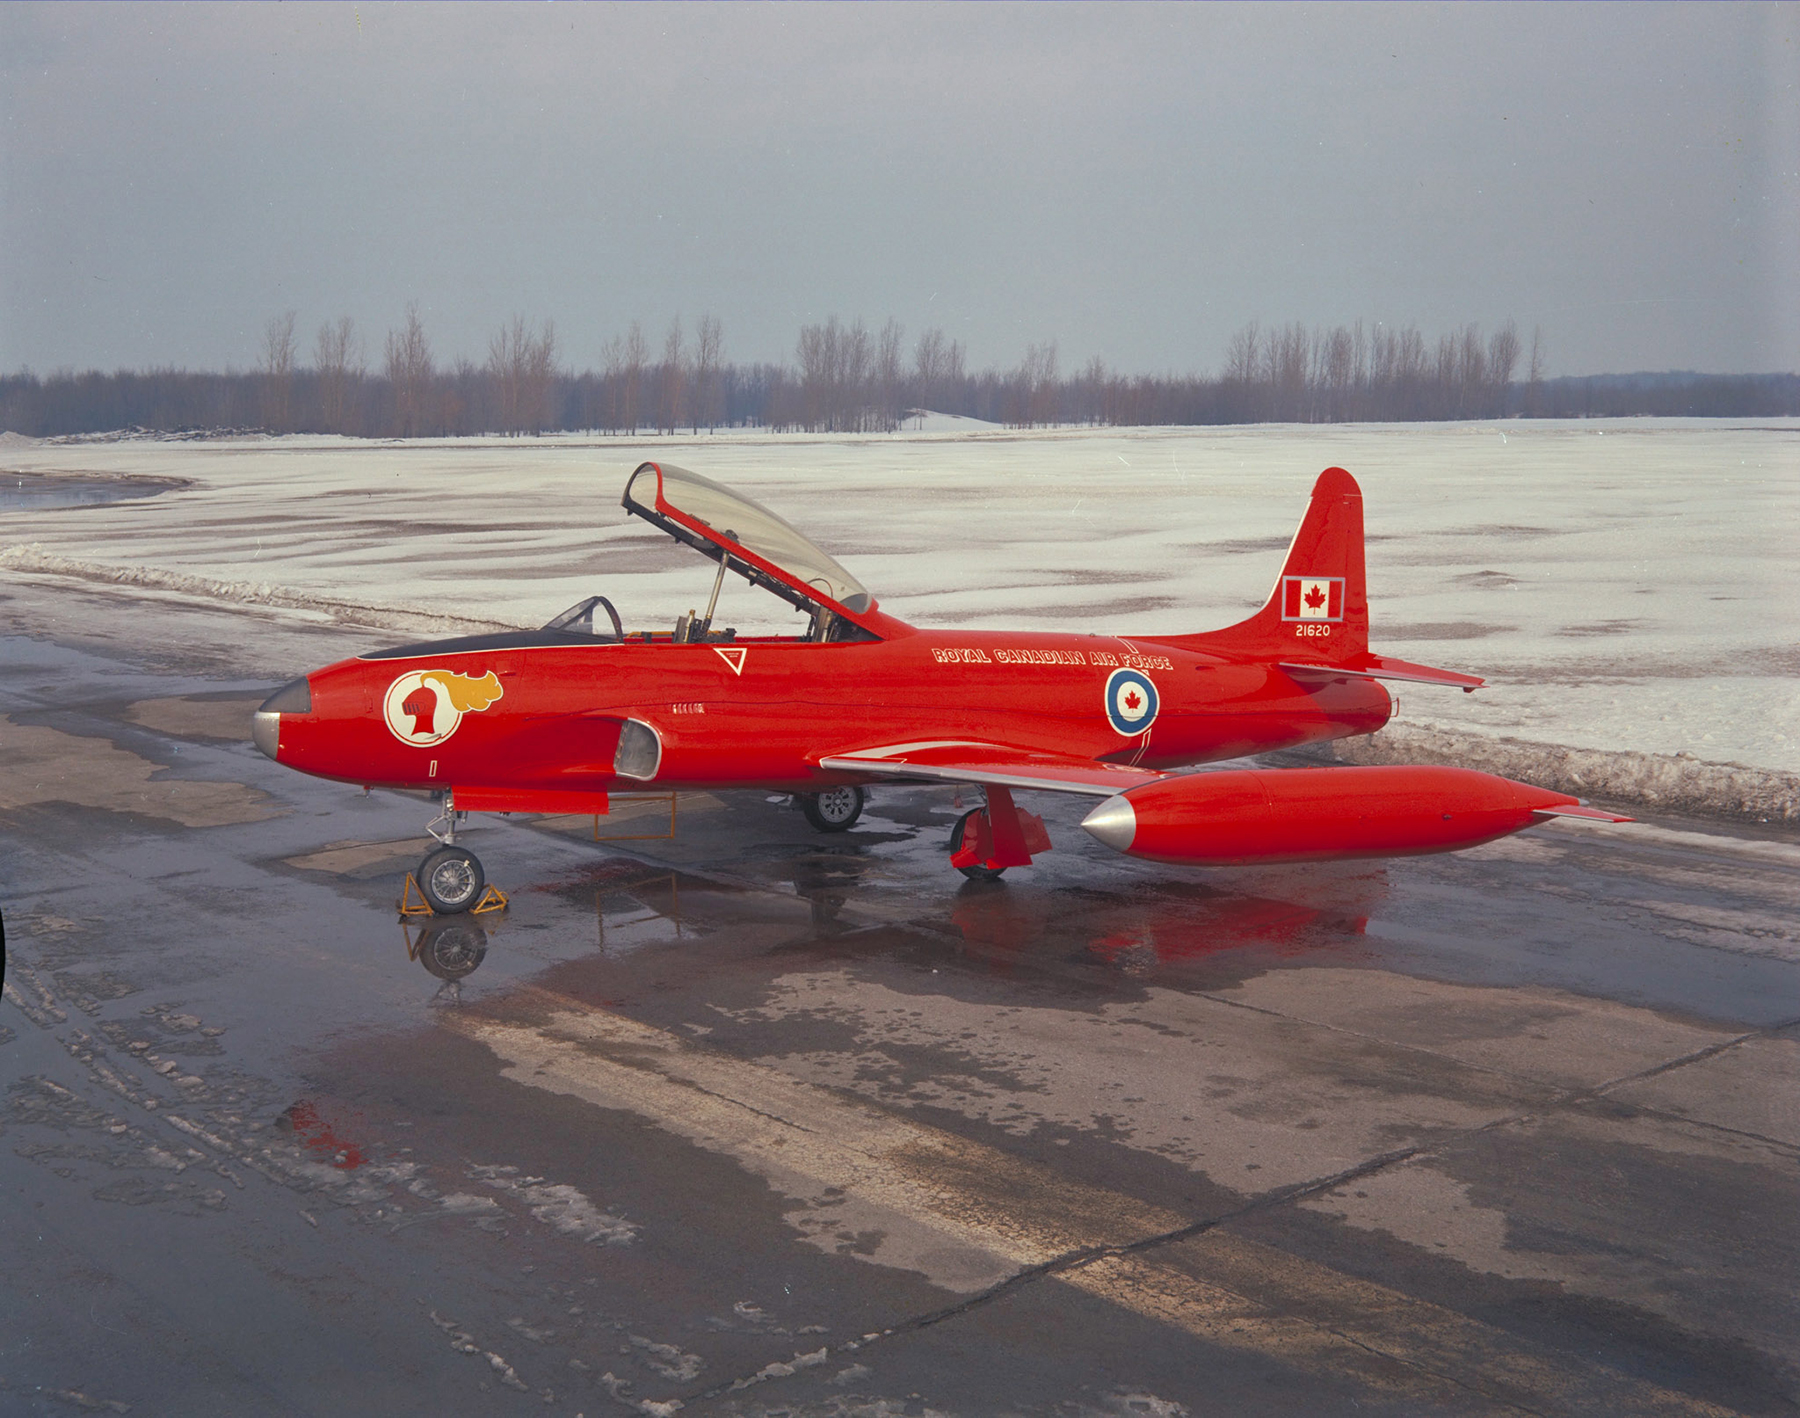 The Red Knight aircraft, a CT-133 Silver Star, sports a new type of red paint for the Golden Centennaires' 1967 Centennial show season. PHOTO: DND Archives, PCN67-283